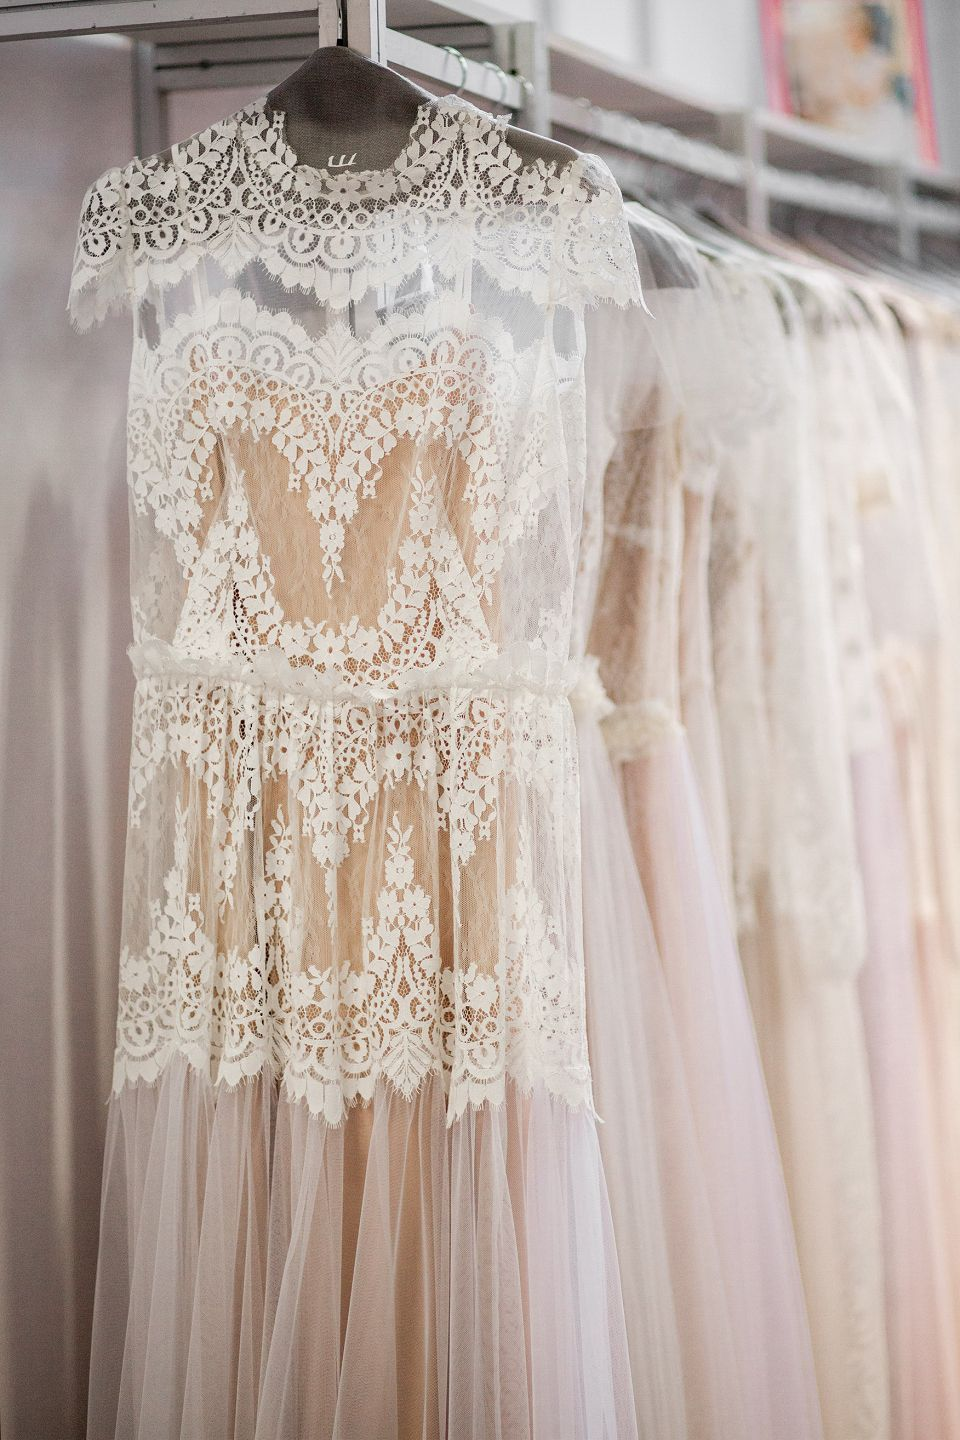 Vintageinspired wedding dresses the future pinterest vintage